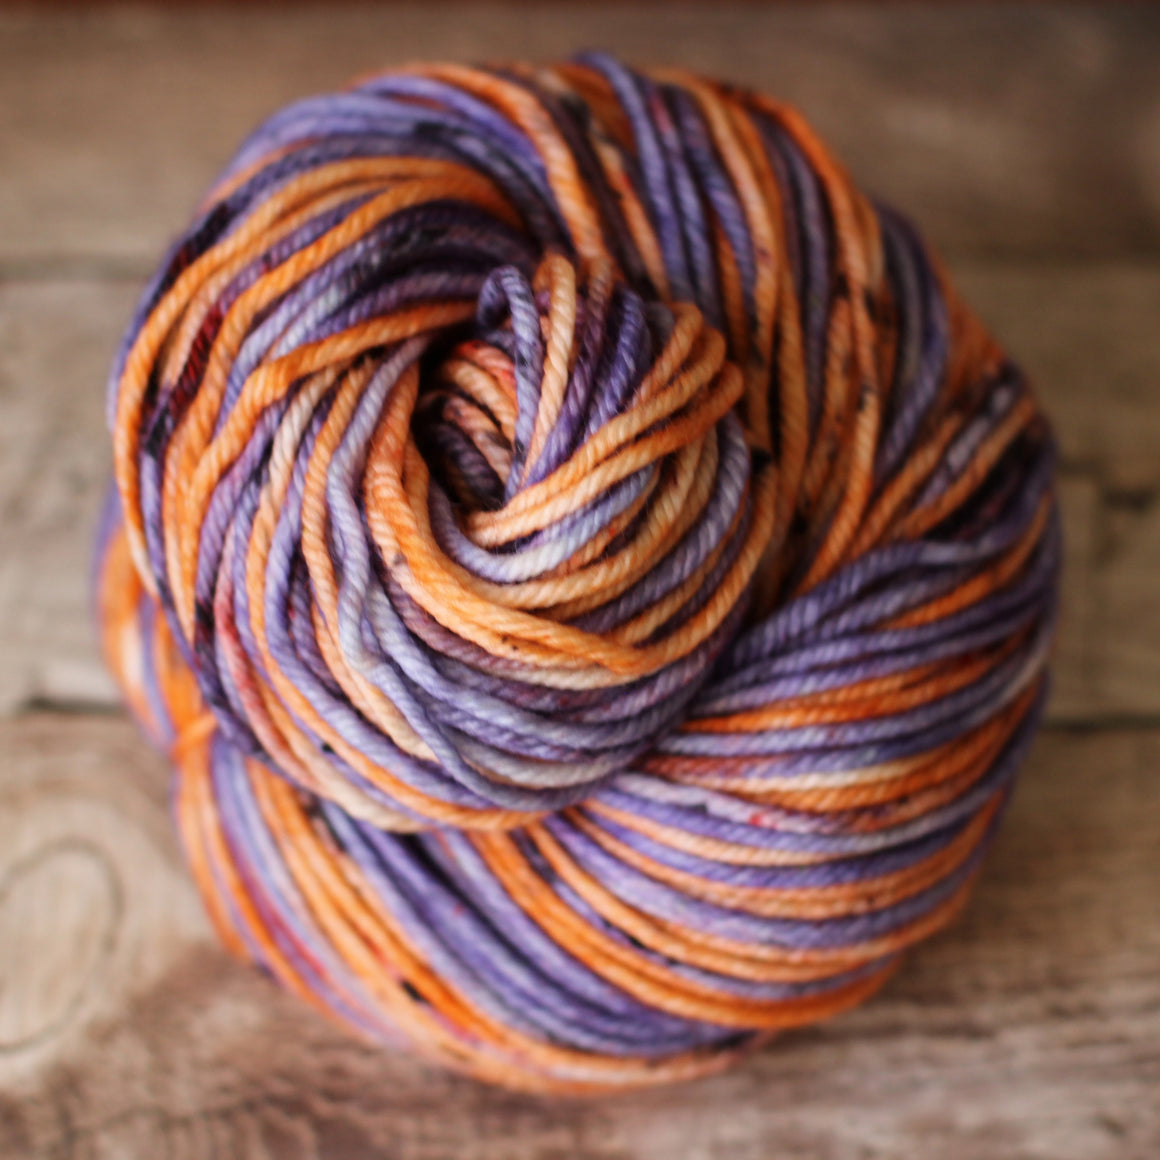 Pickle Chunky / 12ply Yarn - No. 197